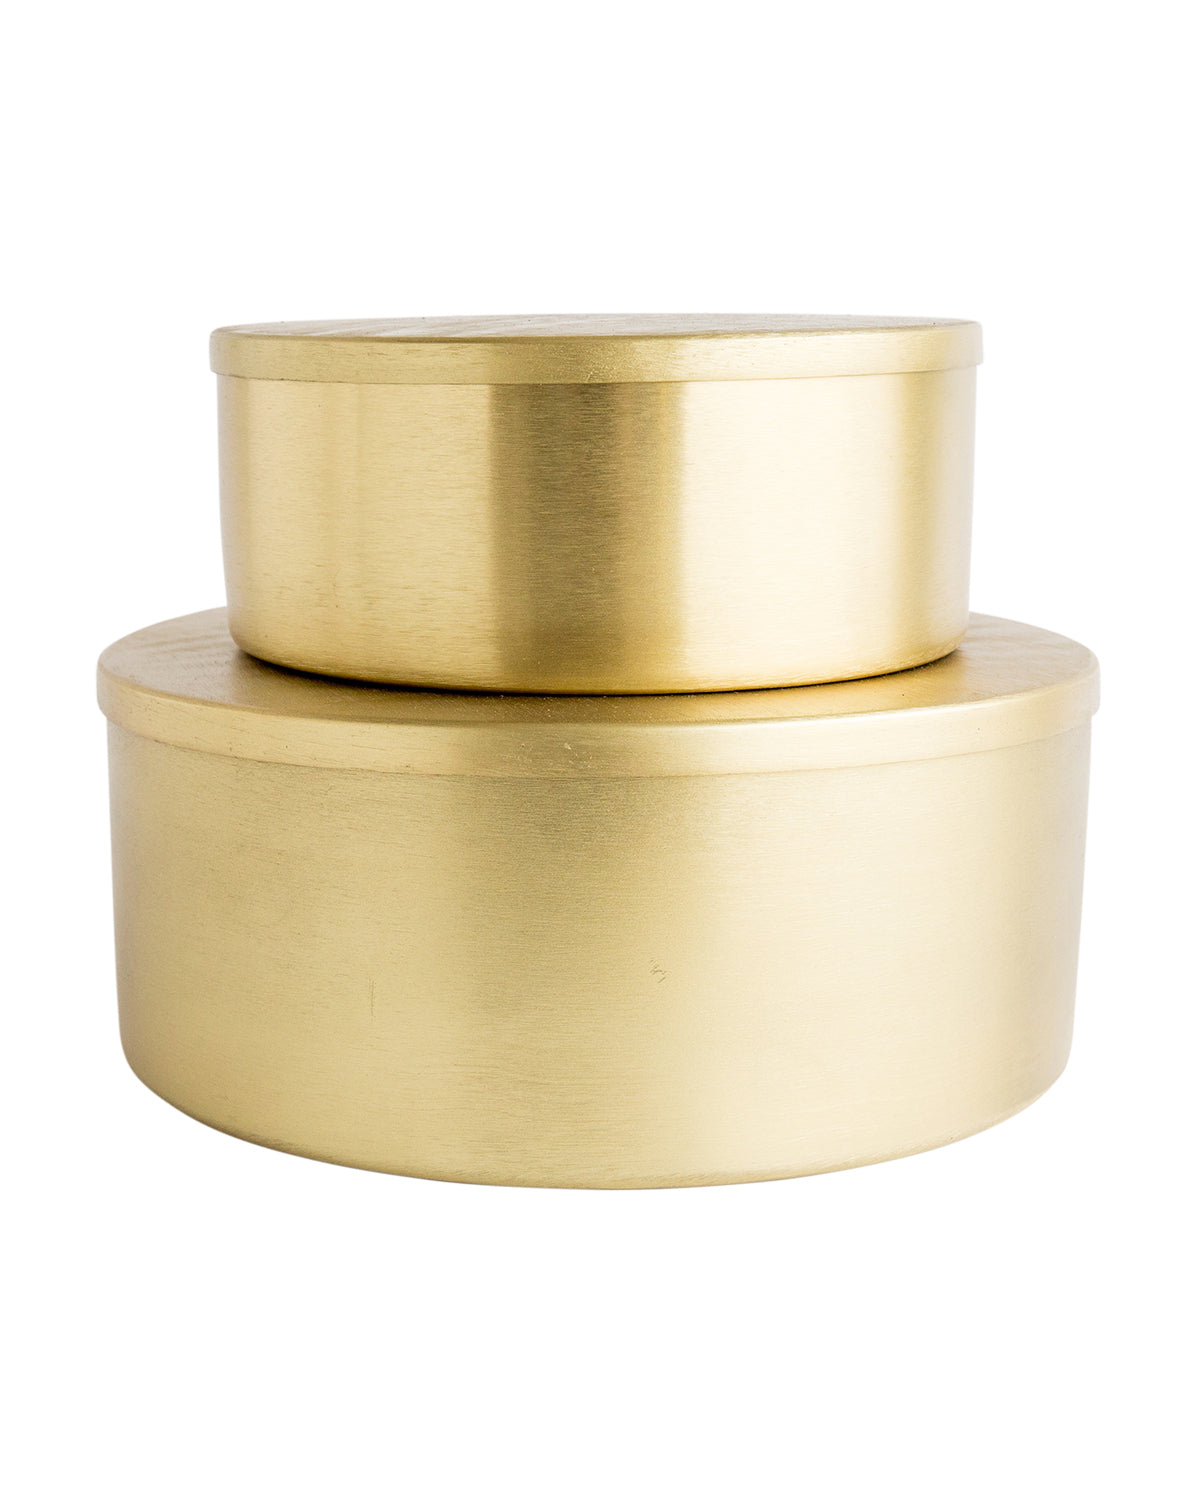 Round Stainless Steel Tins (Set of 2) – McGee & Co.